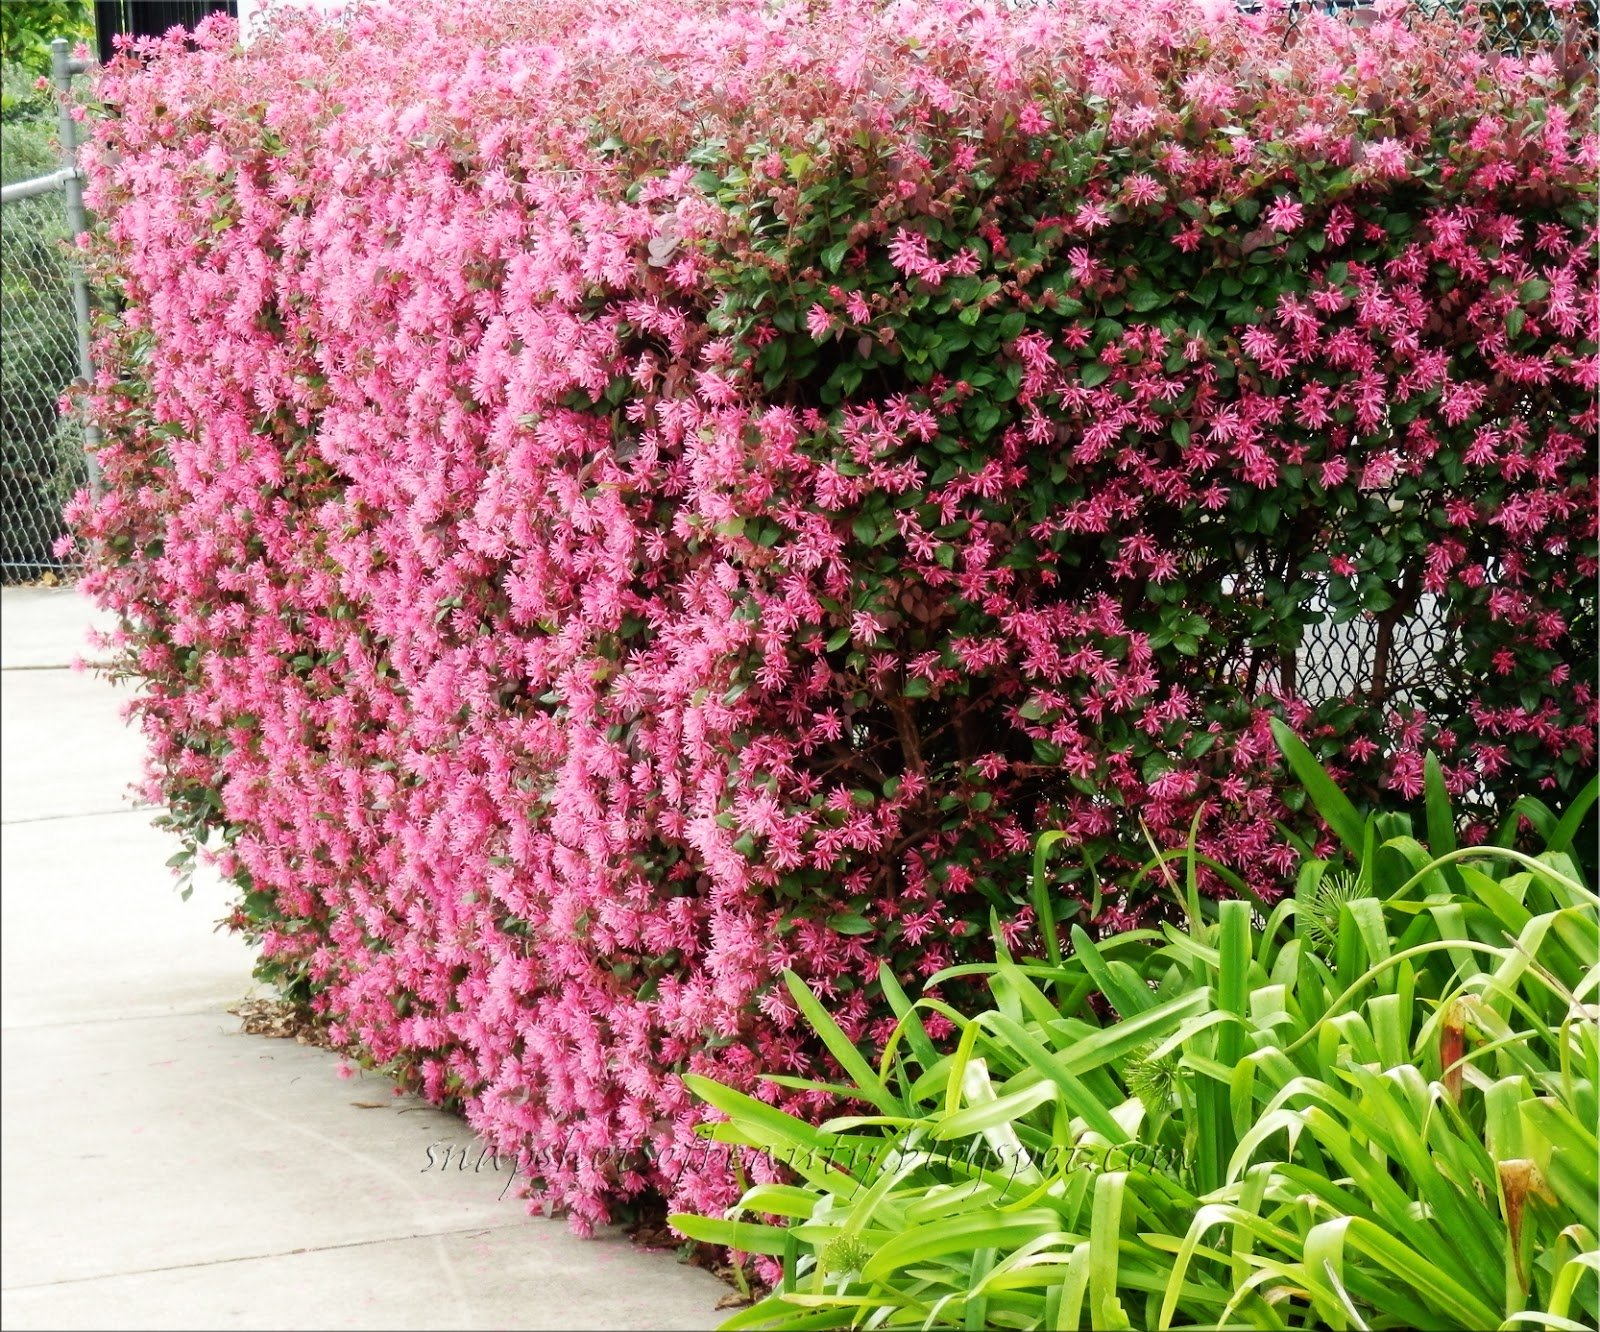 Loropetalum Chinese Fringe Flower Plum Delight Qty 40 Live Flowering Plants by Florida Foliage